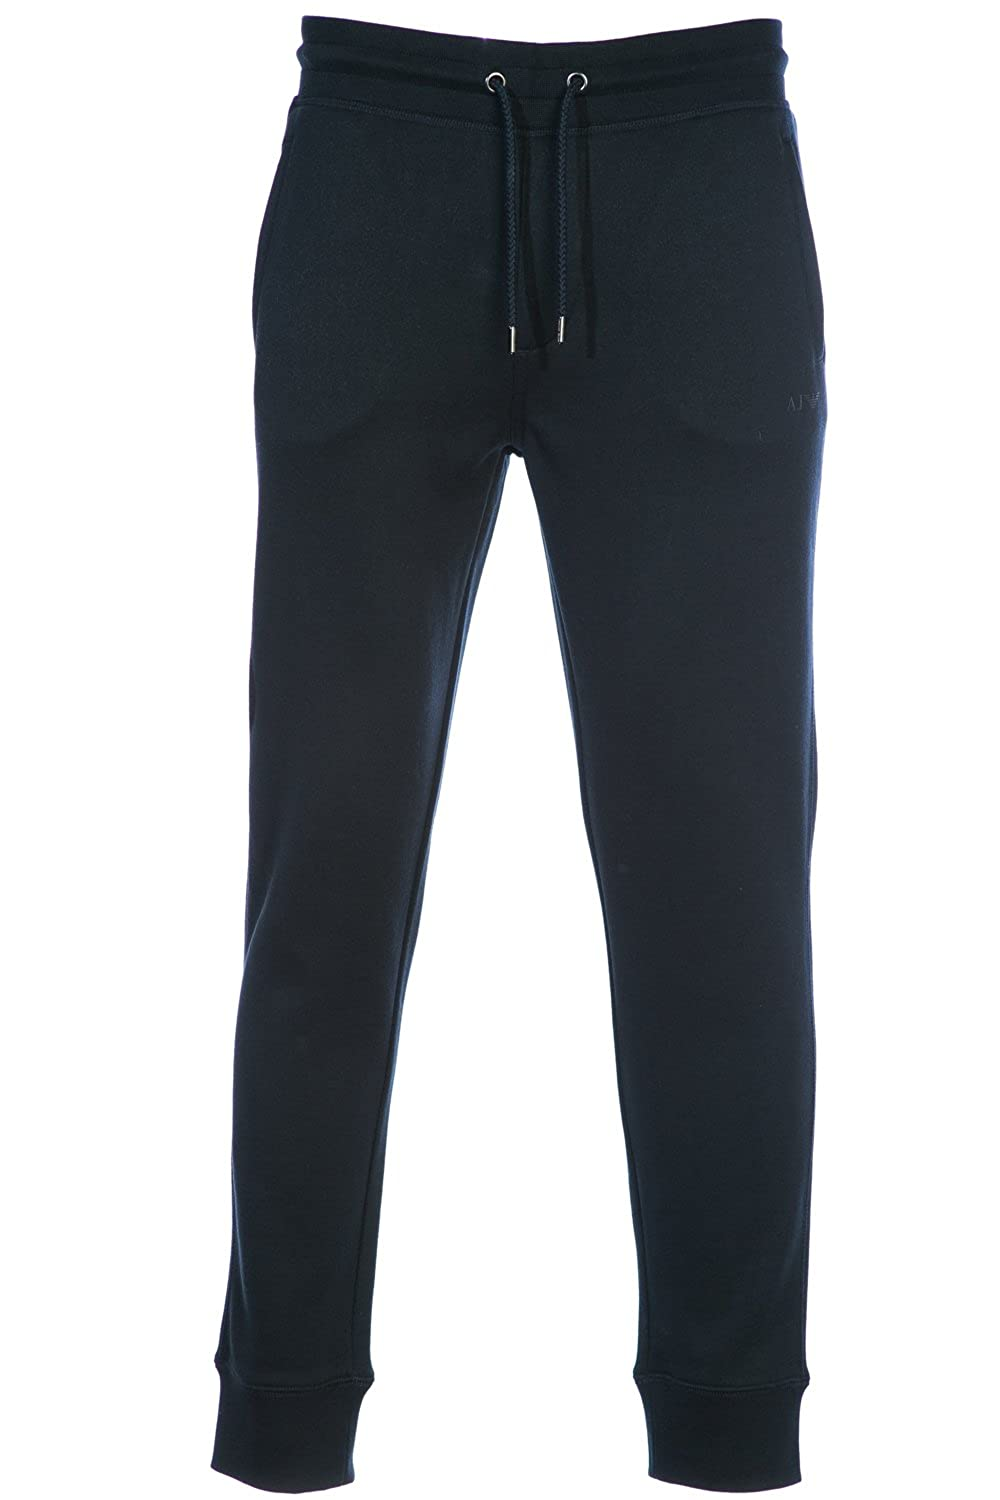 Armani Jeans Basic Sweatpant in Navy